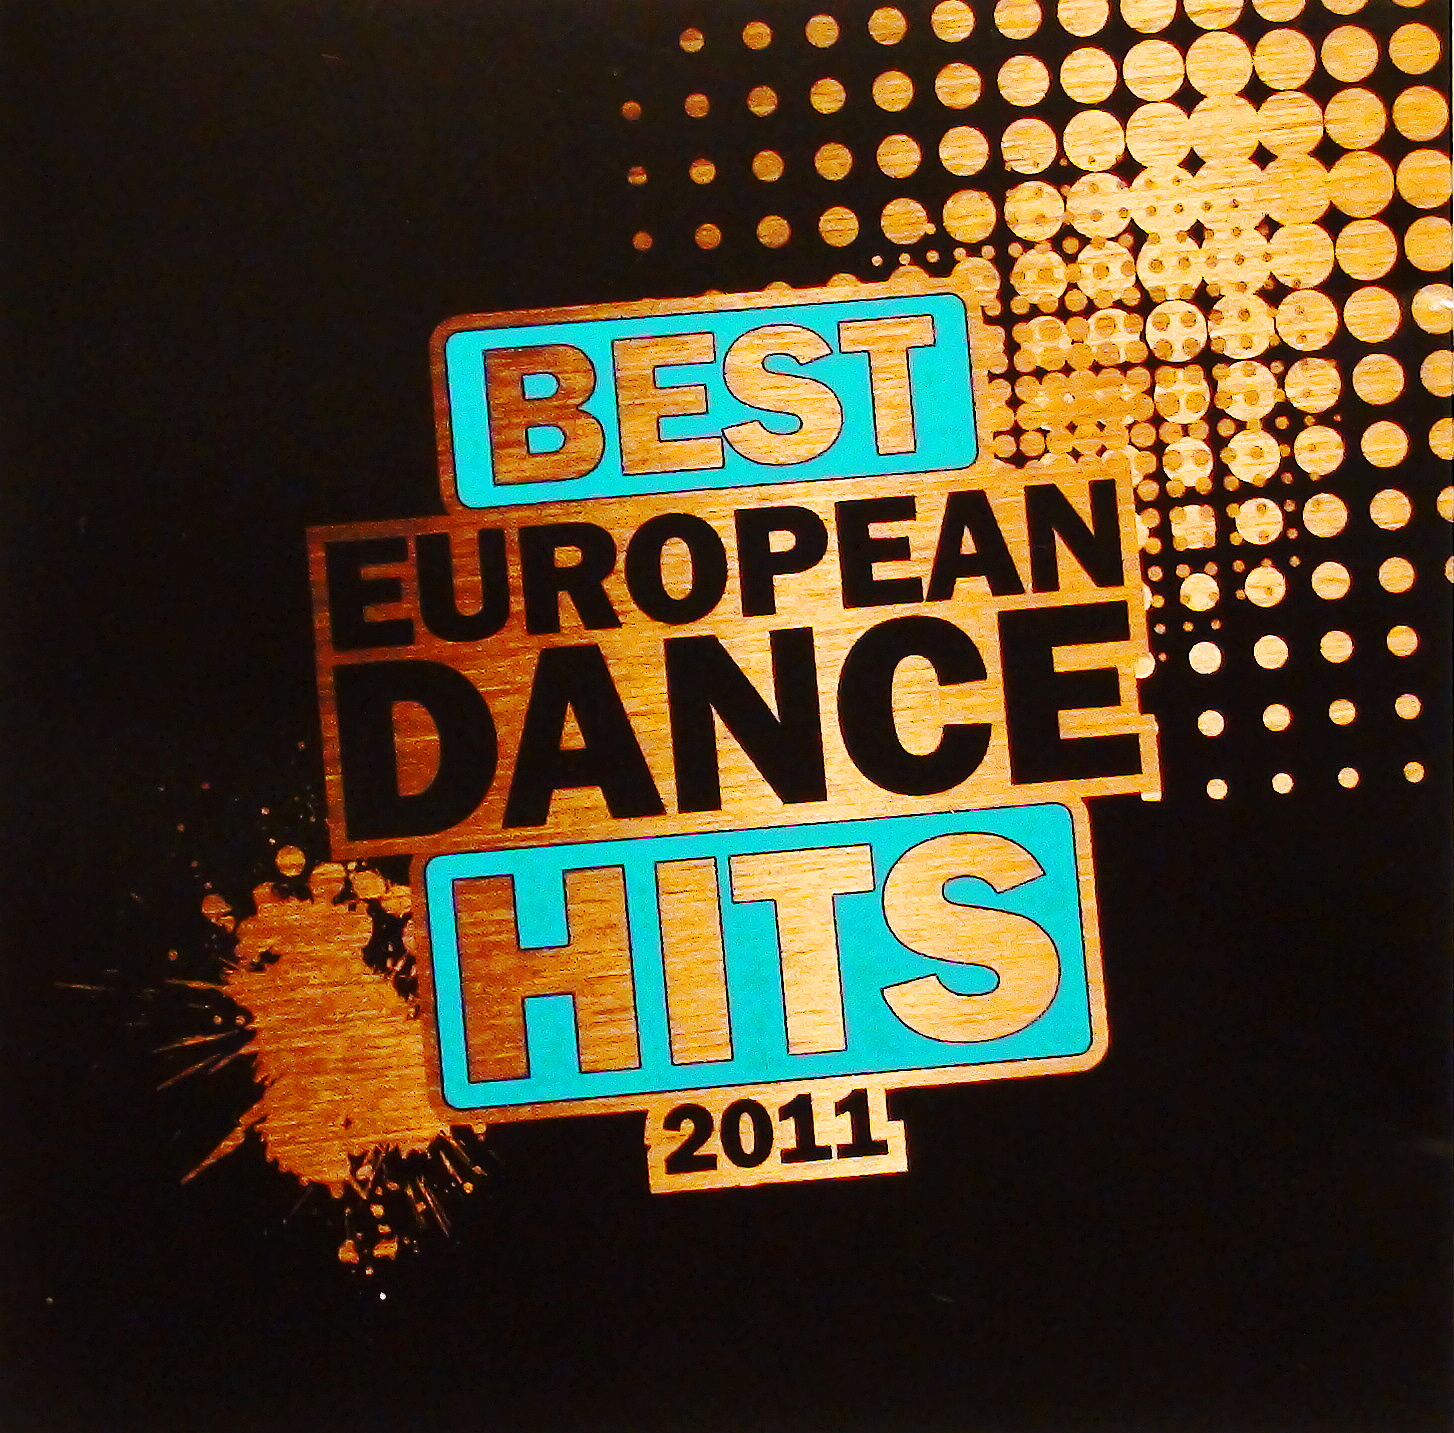 VA - Best European Dance Hits 2011 (CD ORIGINAL)